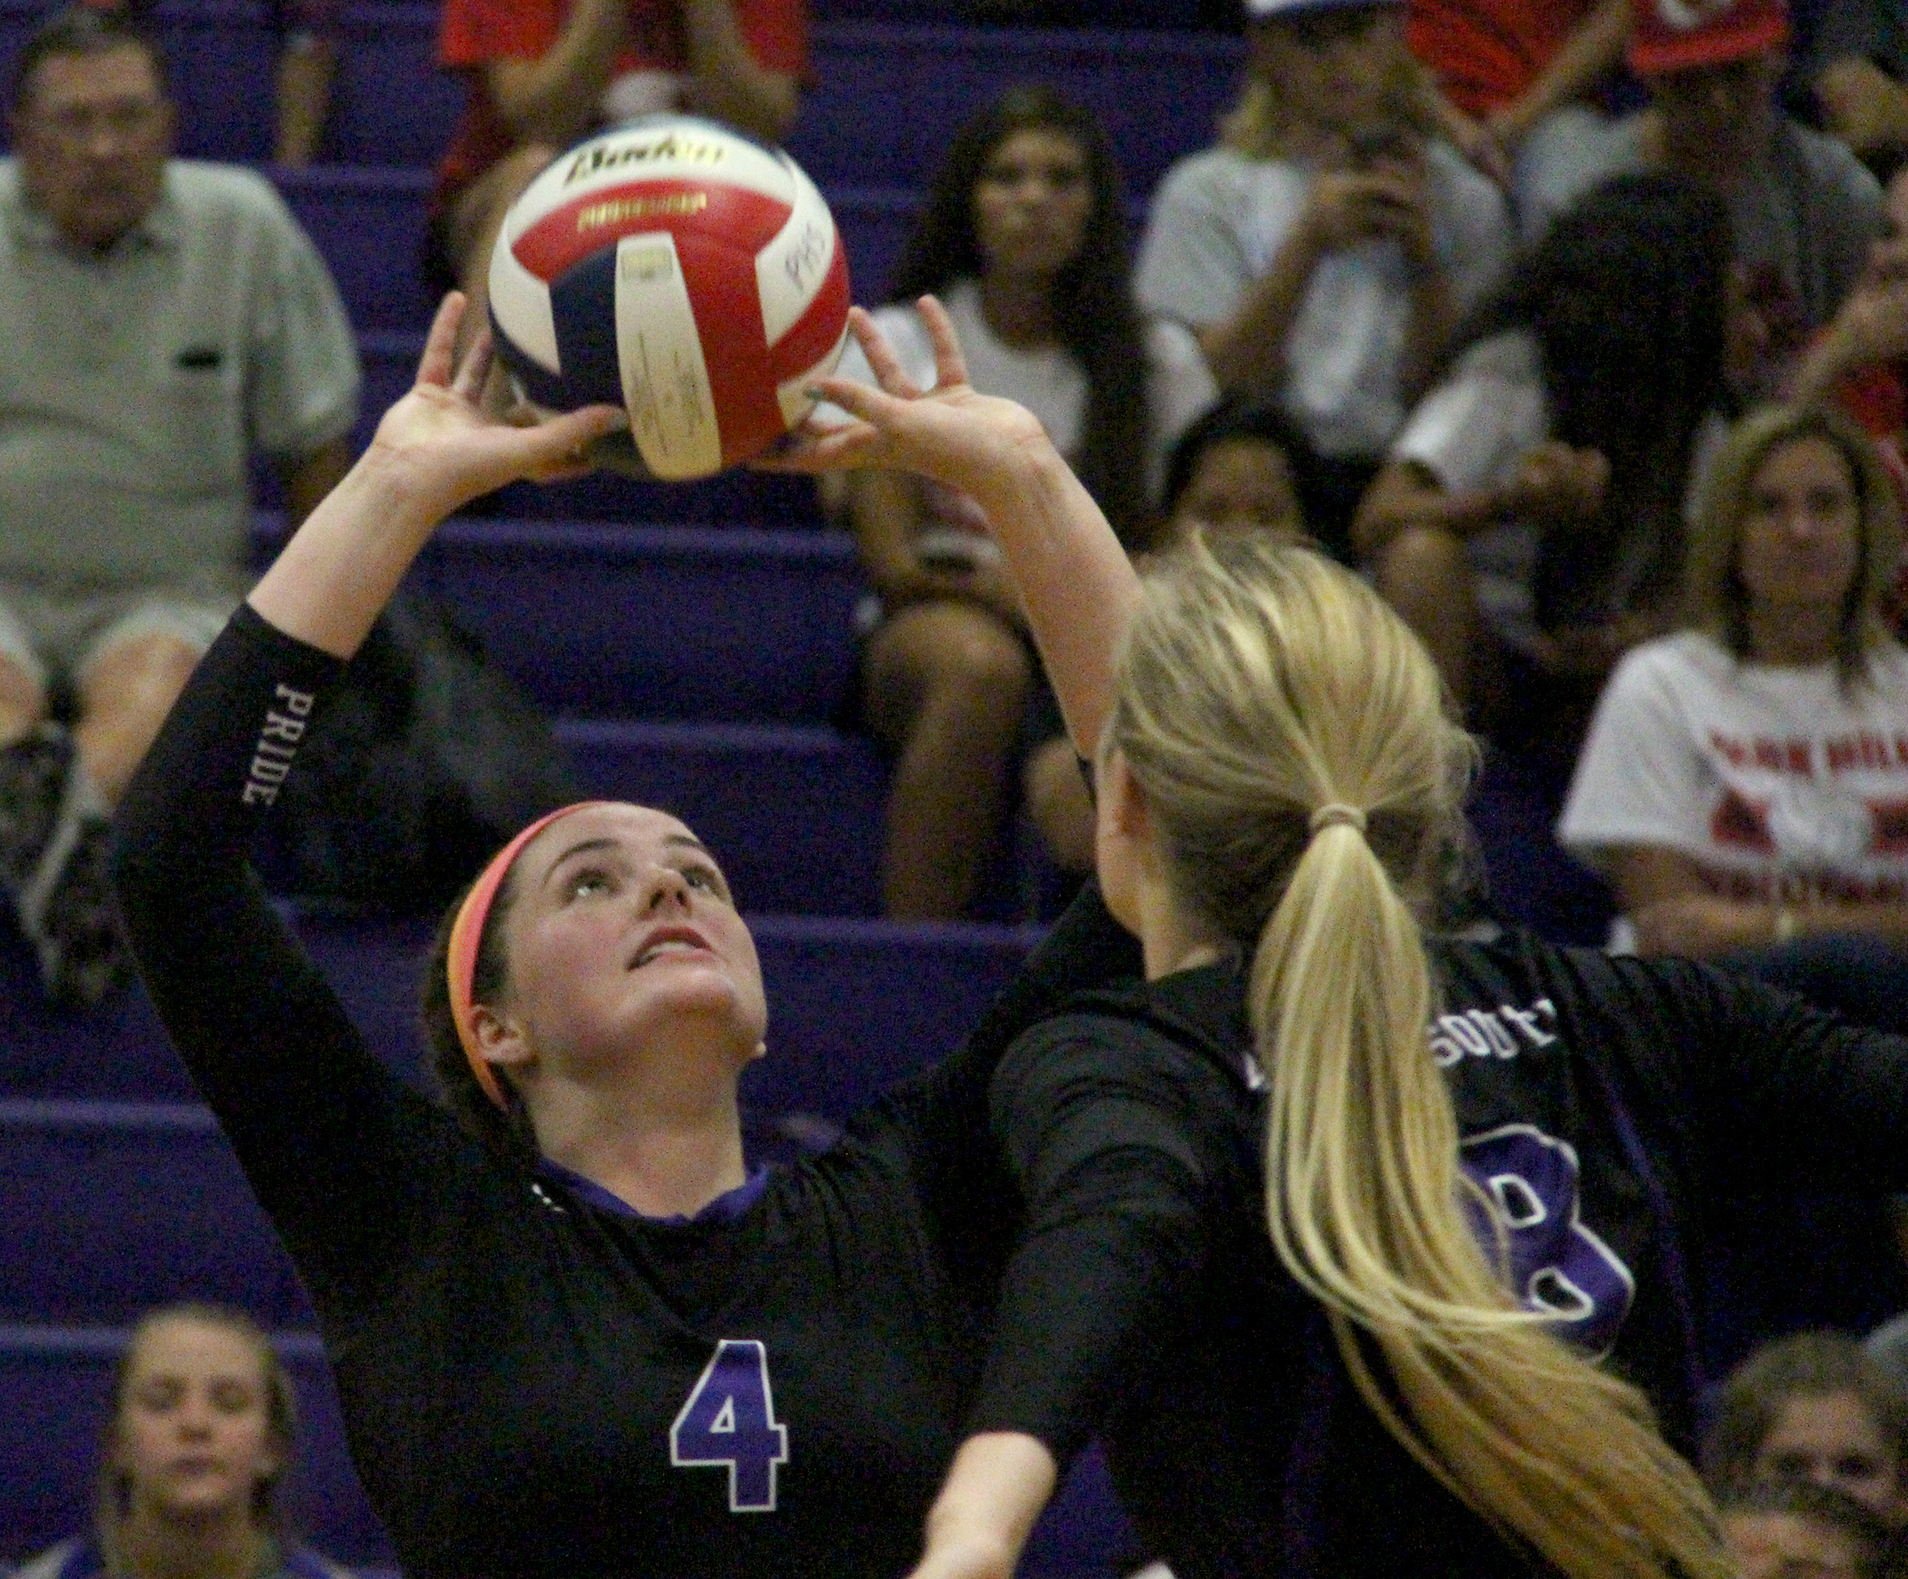 ROSS MARTIN/Citizen photo Park Hill South senior Allison Sadler (4) prepares to set for junior middle hitter Annika Welty during a match Wednesday, Sept. 7 at Park Hill South High School in Riverside, Mo.